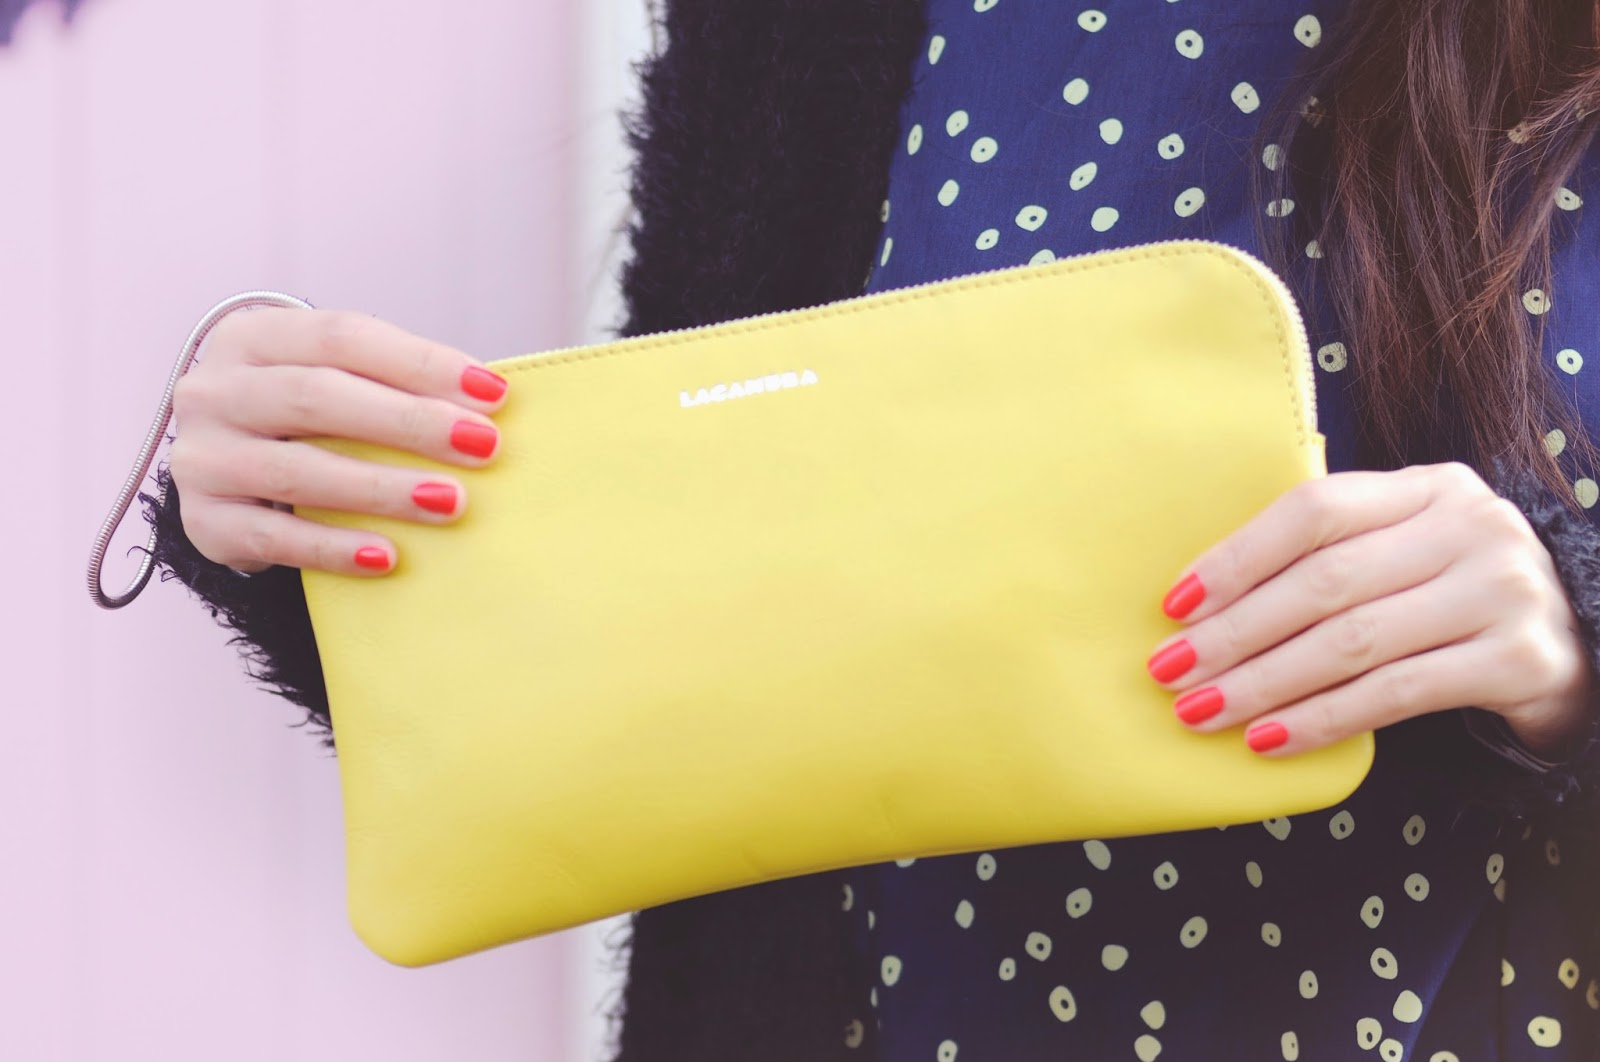 red nail polish, yellow clutch bag